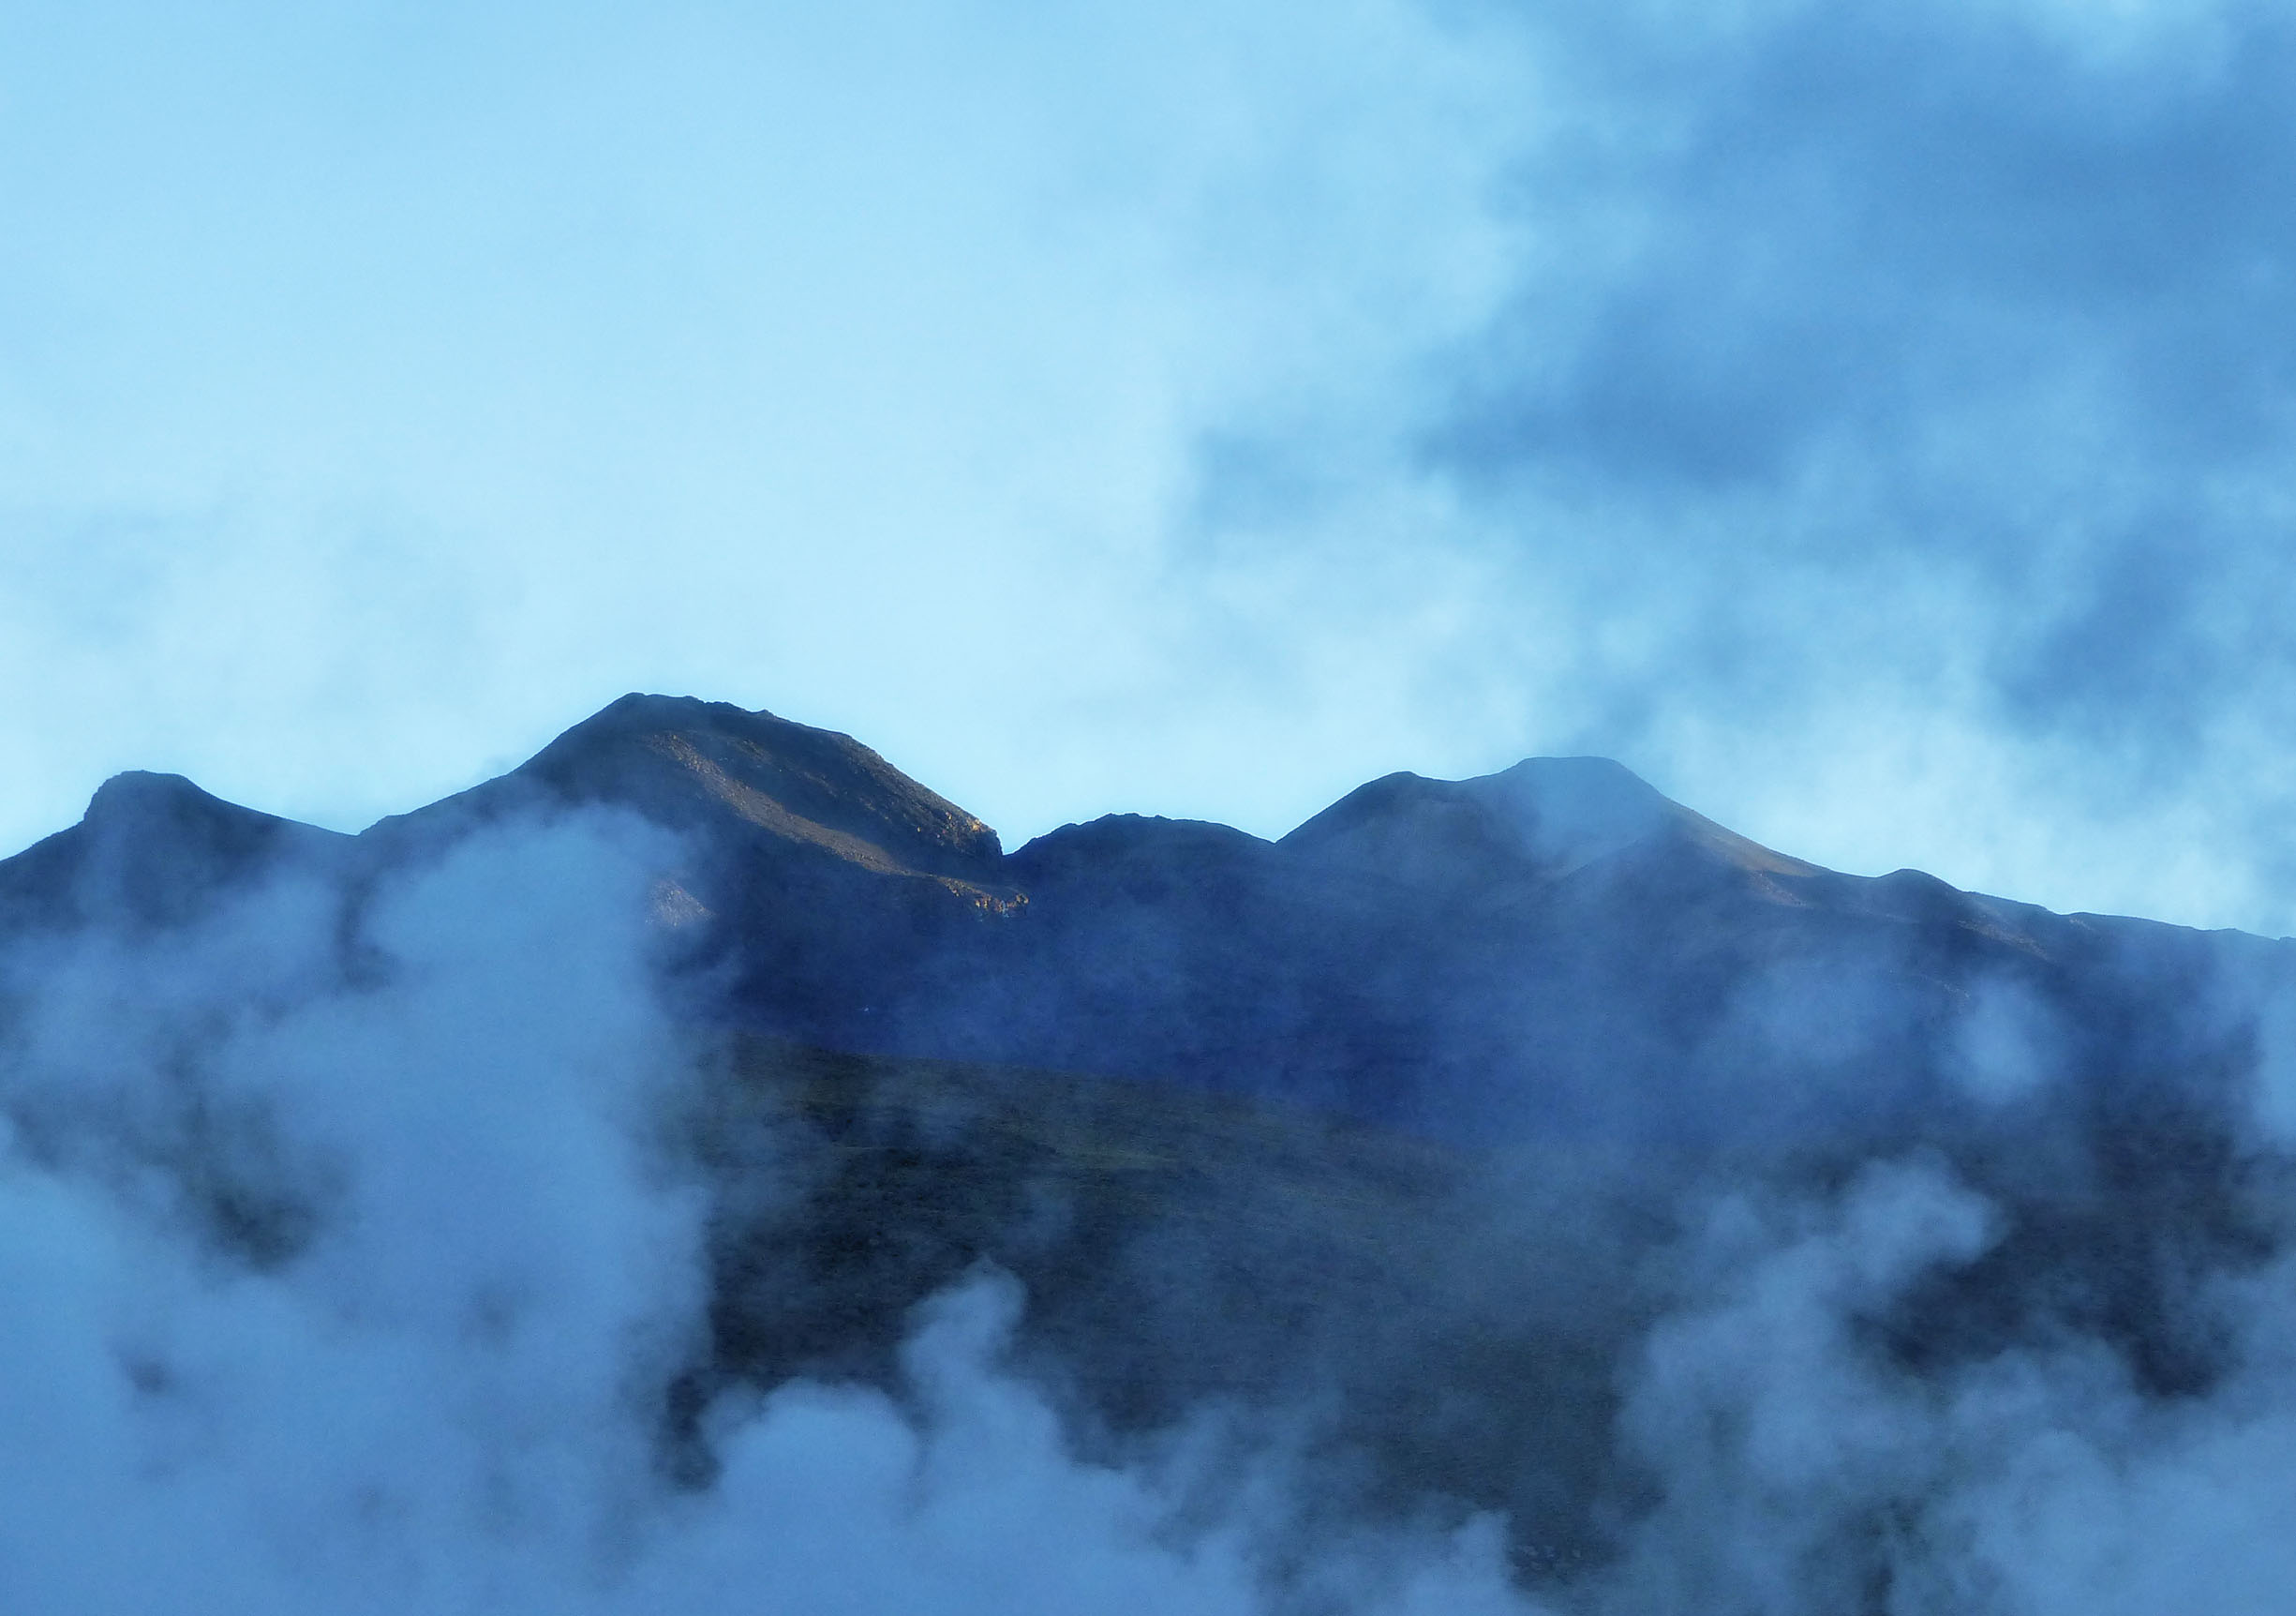 Steam rising in front of mountain backdrop